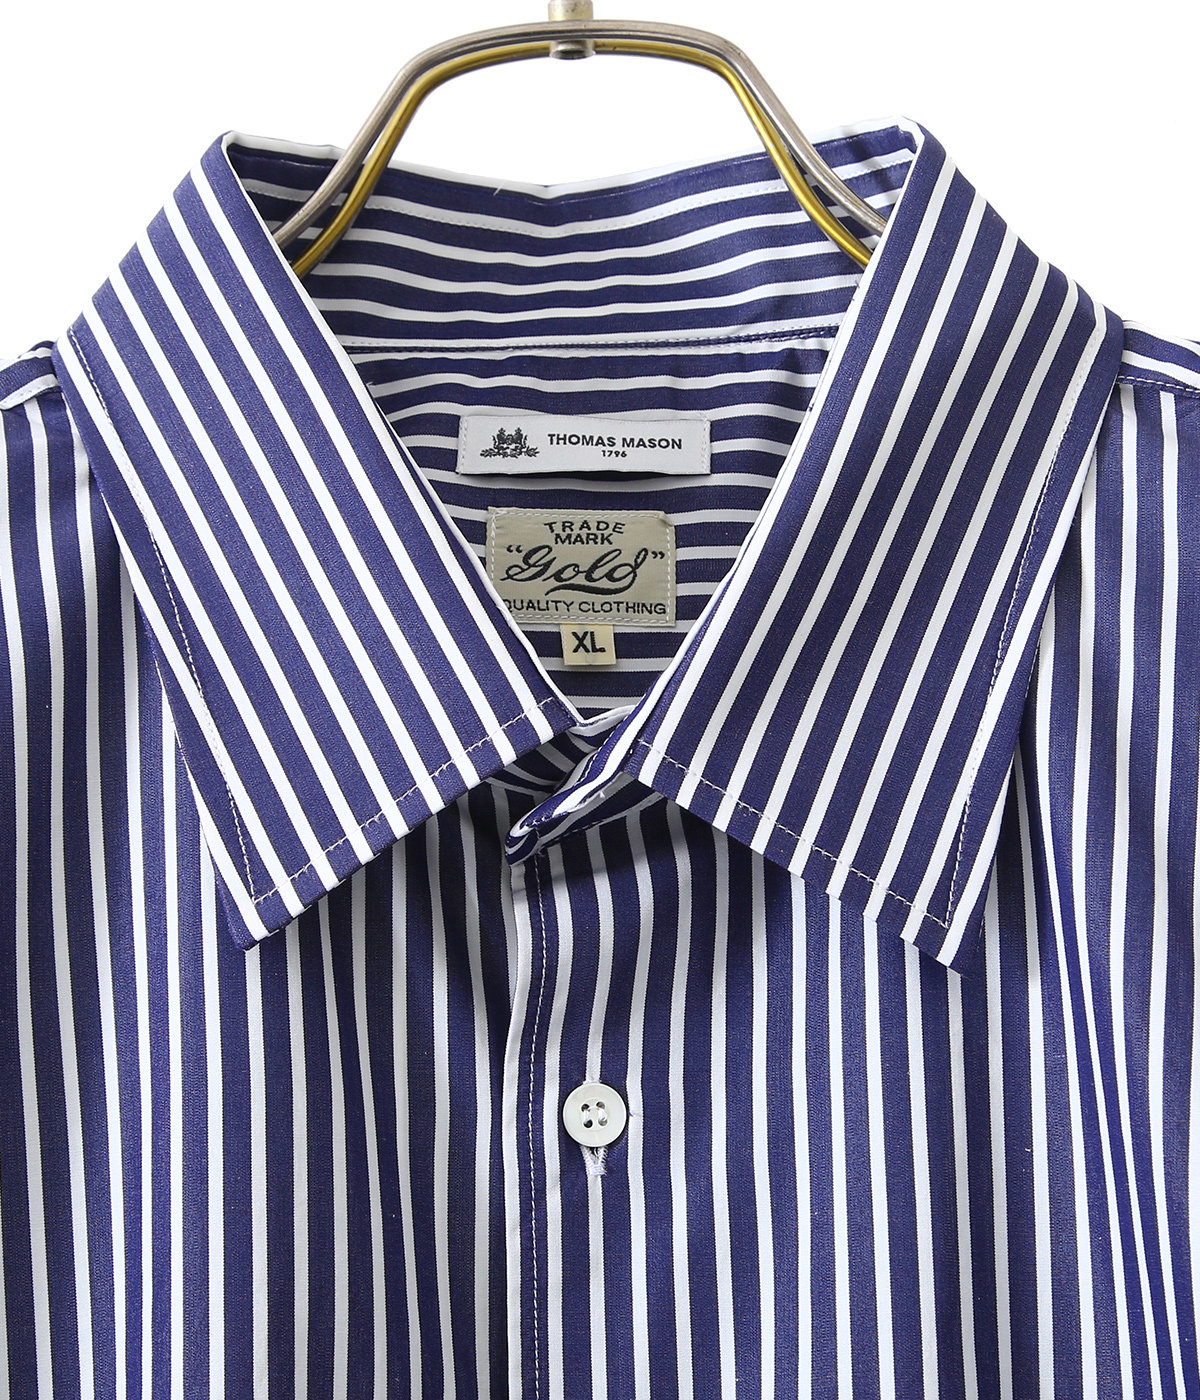 120/2 BROAD STRIPE REGULAR COLLAR S/S BIG SHIRT